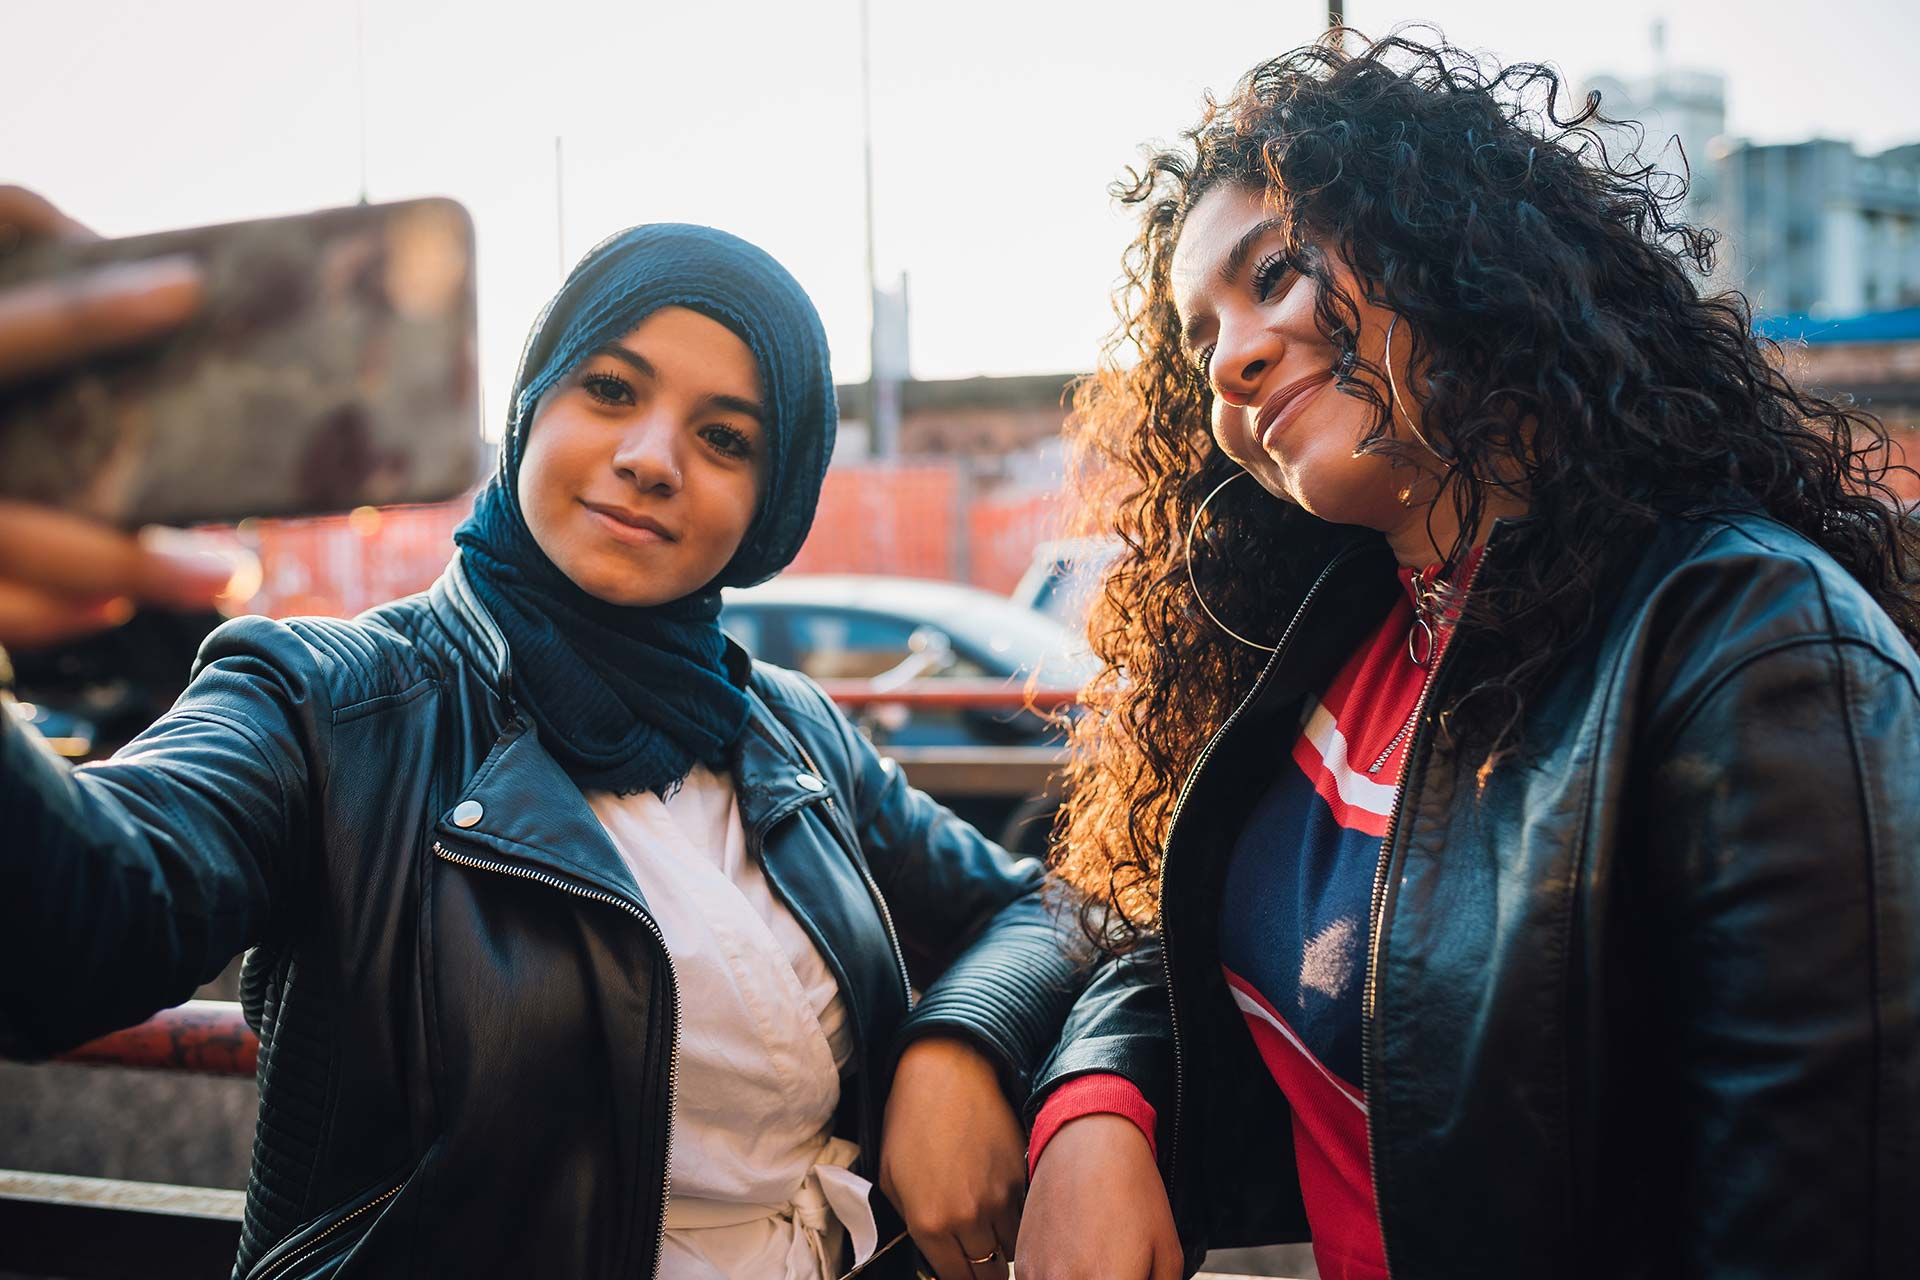 woman in headscarf and woman with long curly hair taking selfie